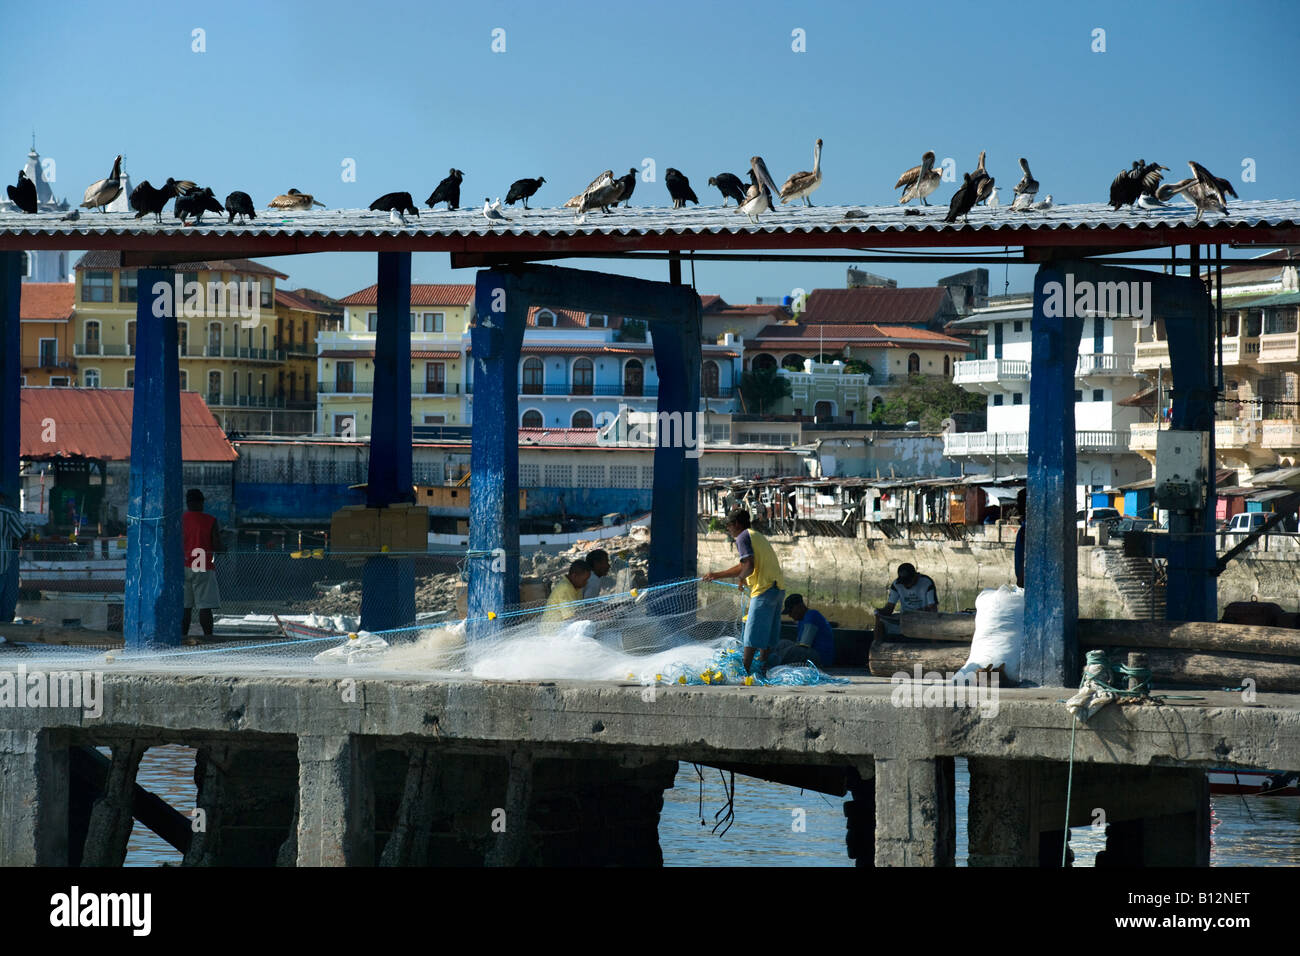 FISH MARKET QUAY CASCO VIEJO SANTA ANA PANAMA CITY REPUBLIC OF PANAMA Stock Photo